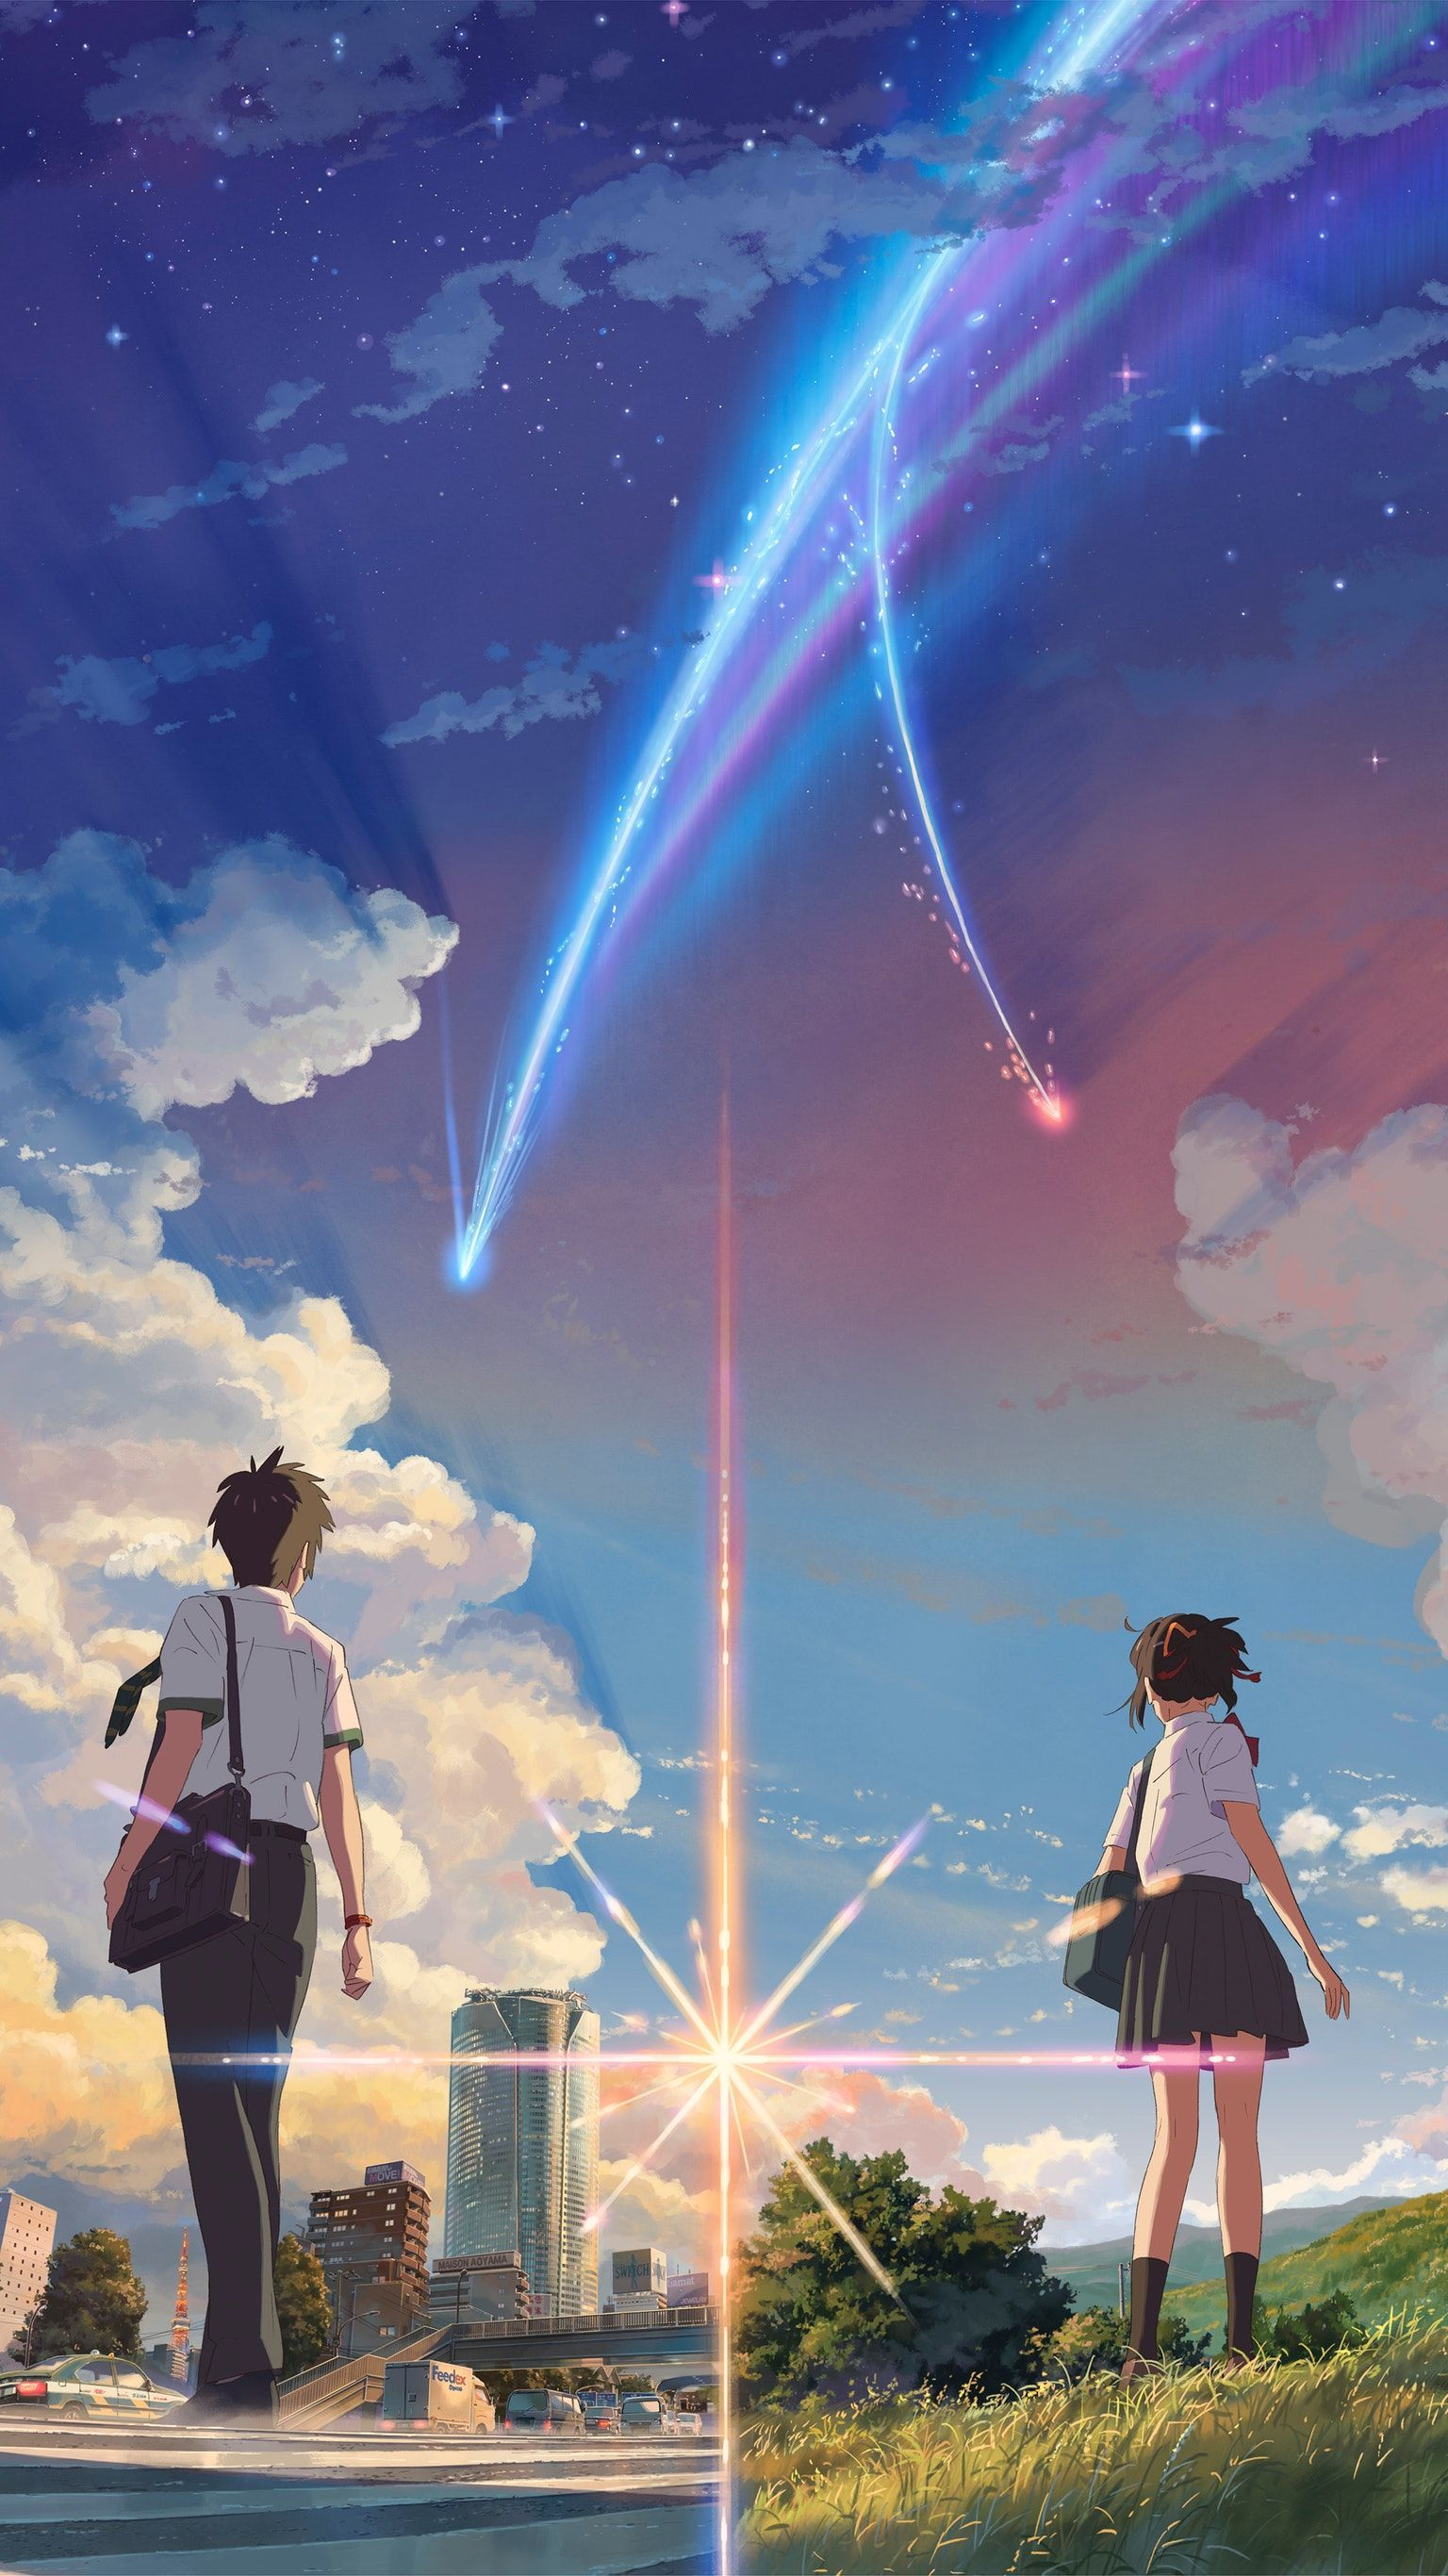 Your Name Anime 2016 Wallpapers - Top